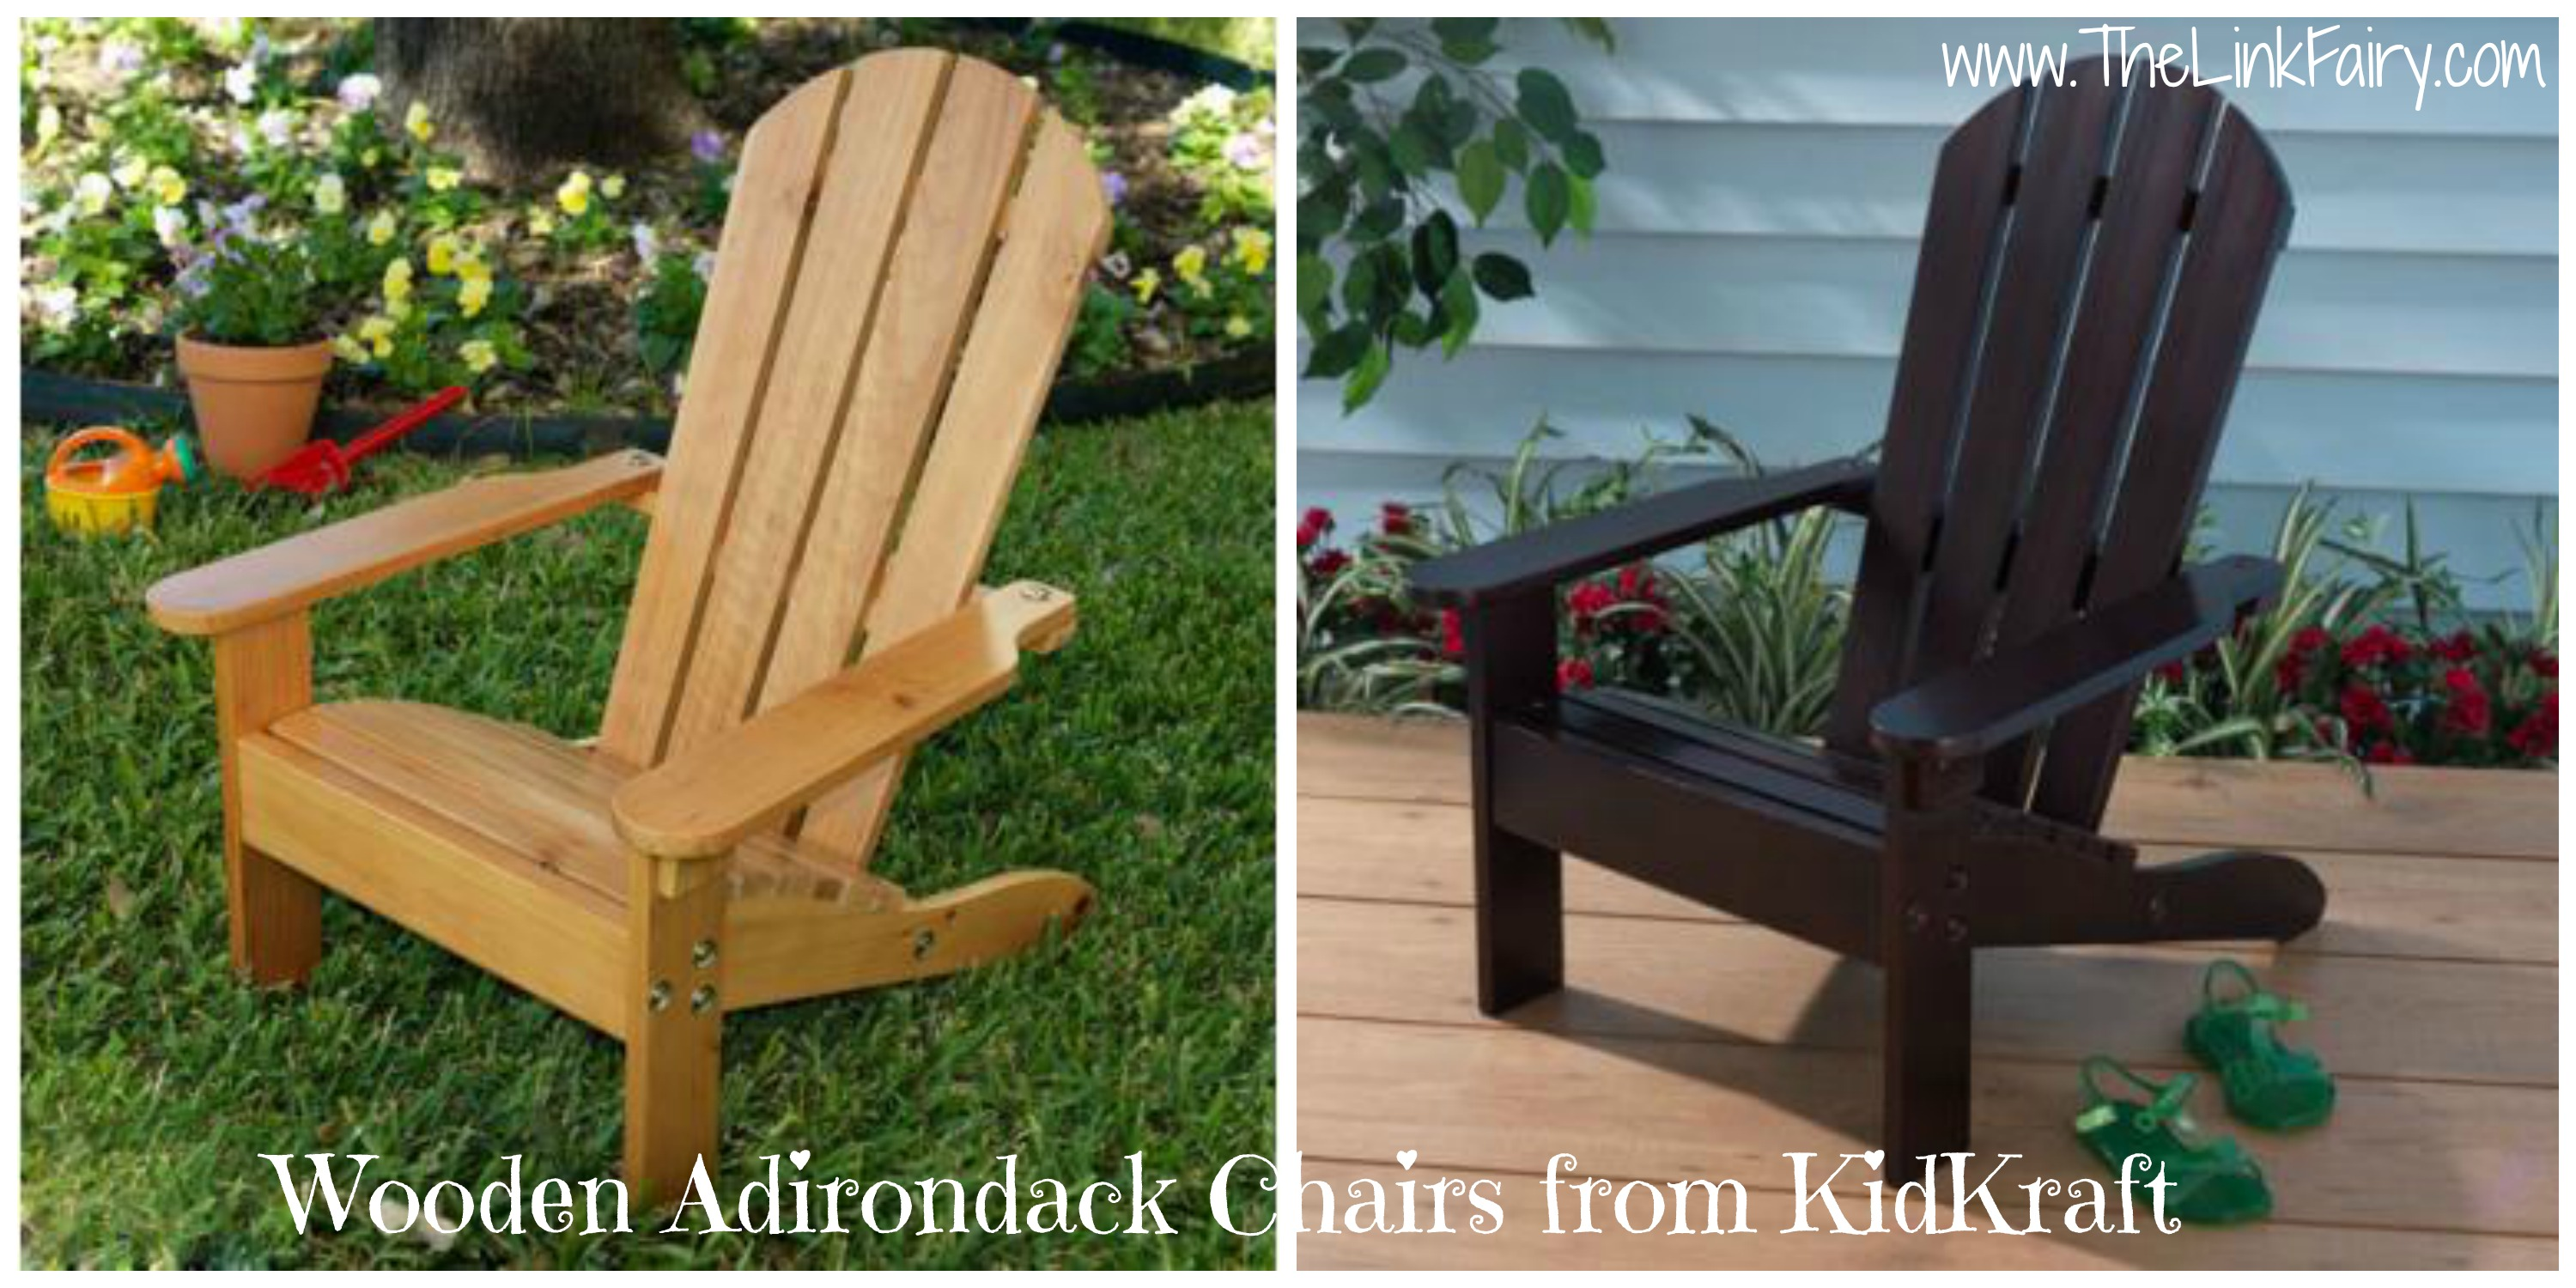 Give your kids a fun place to sit with Adirondack Chairs from KidKraft